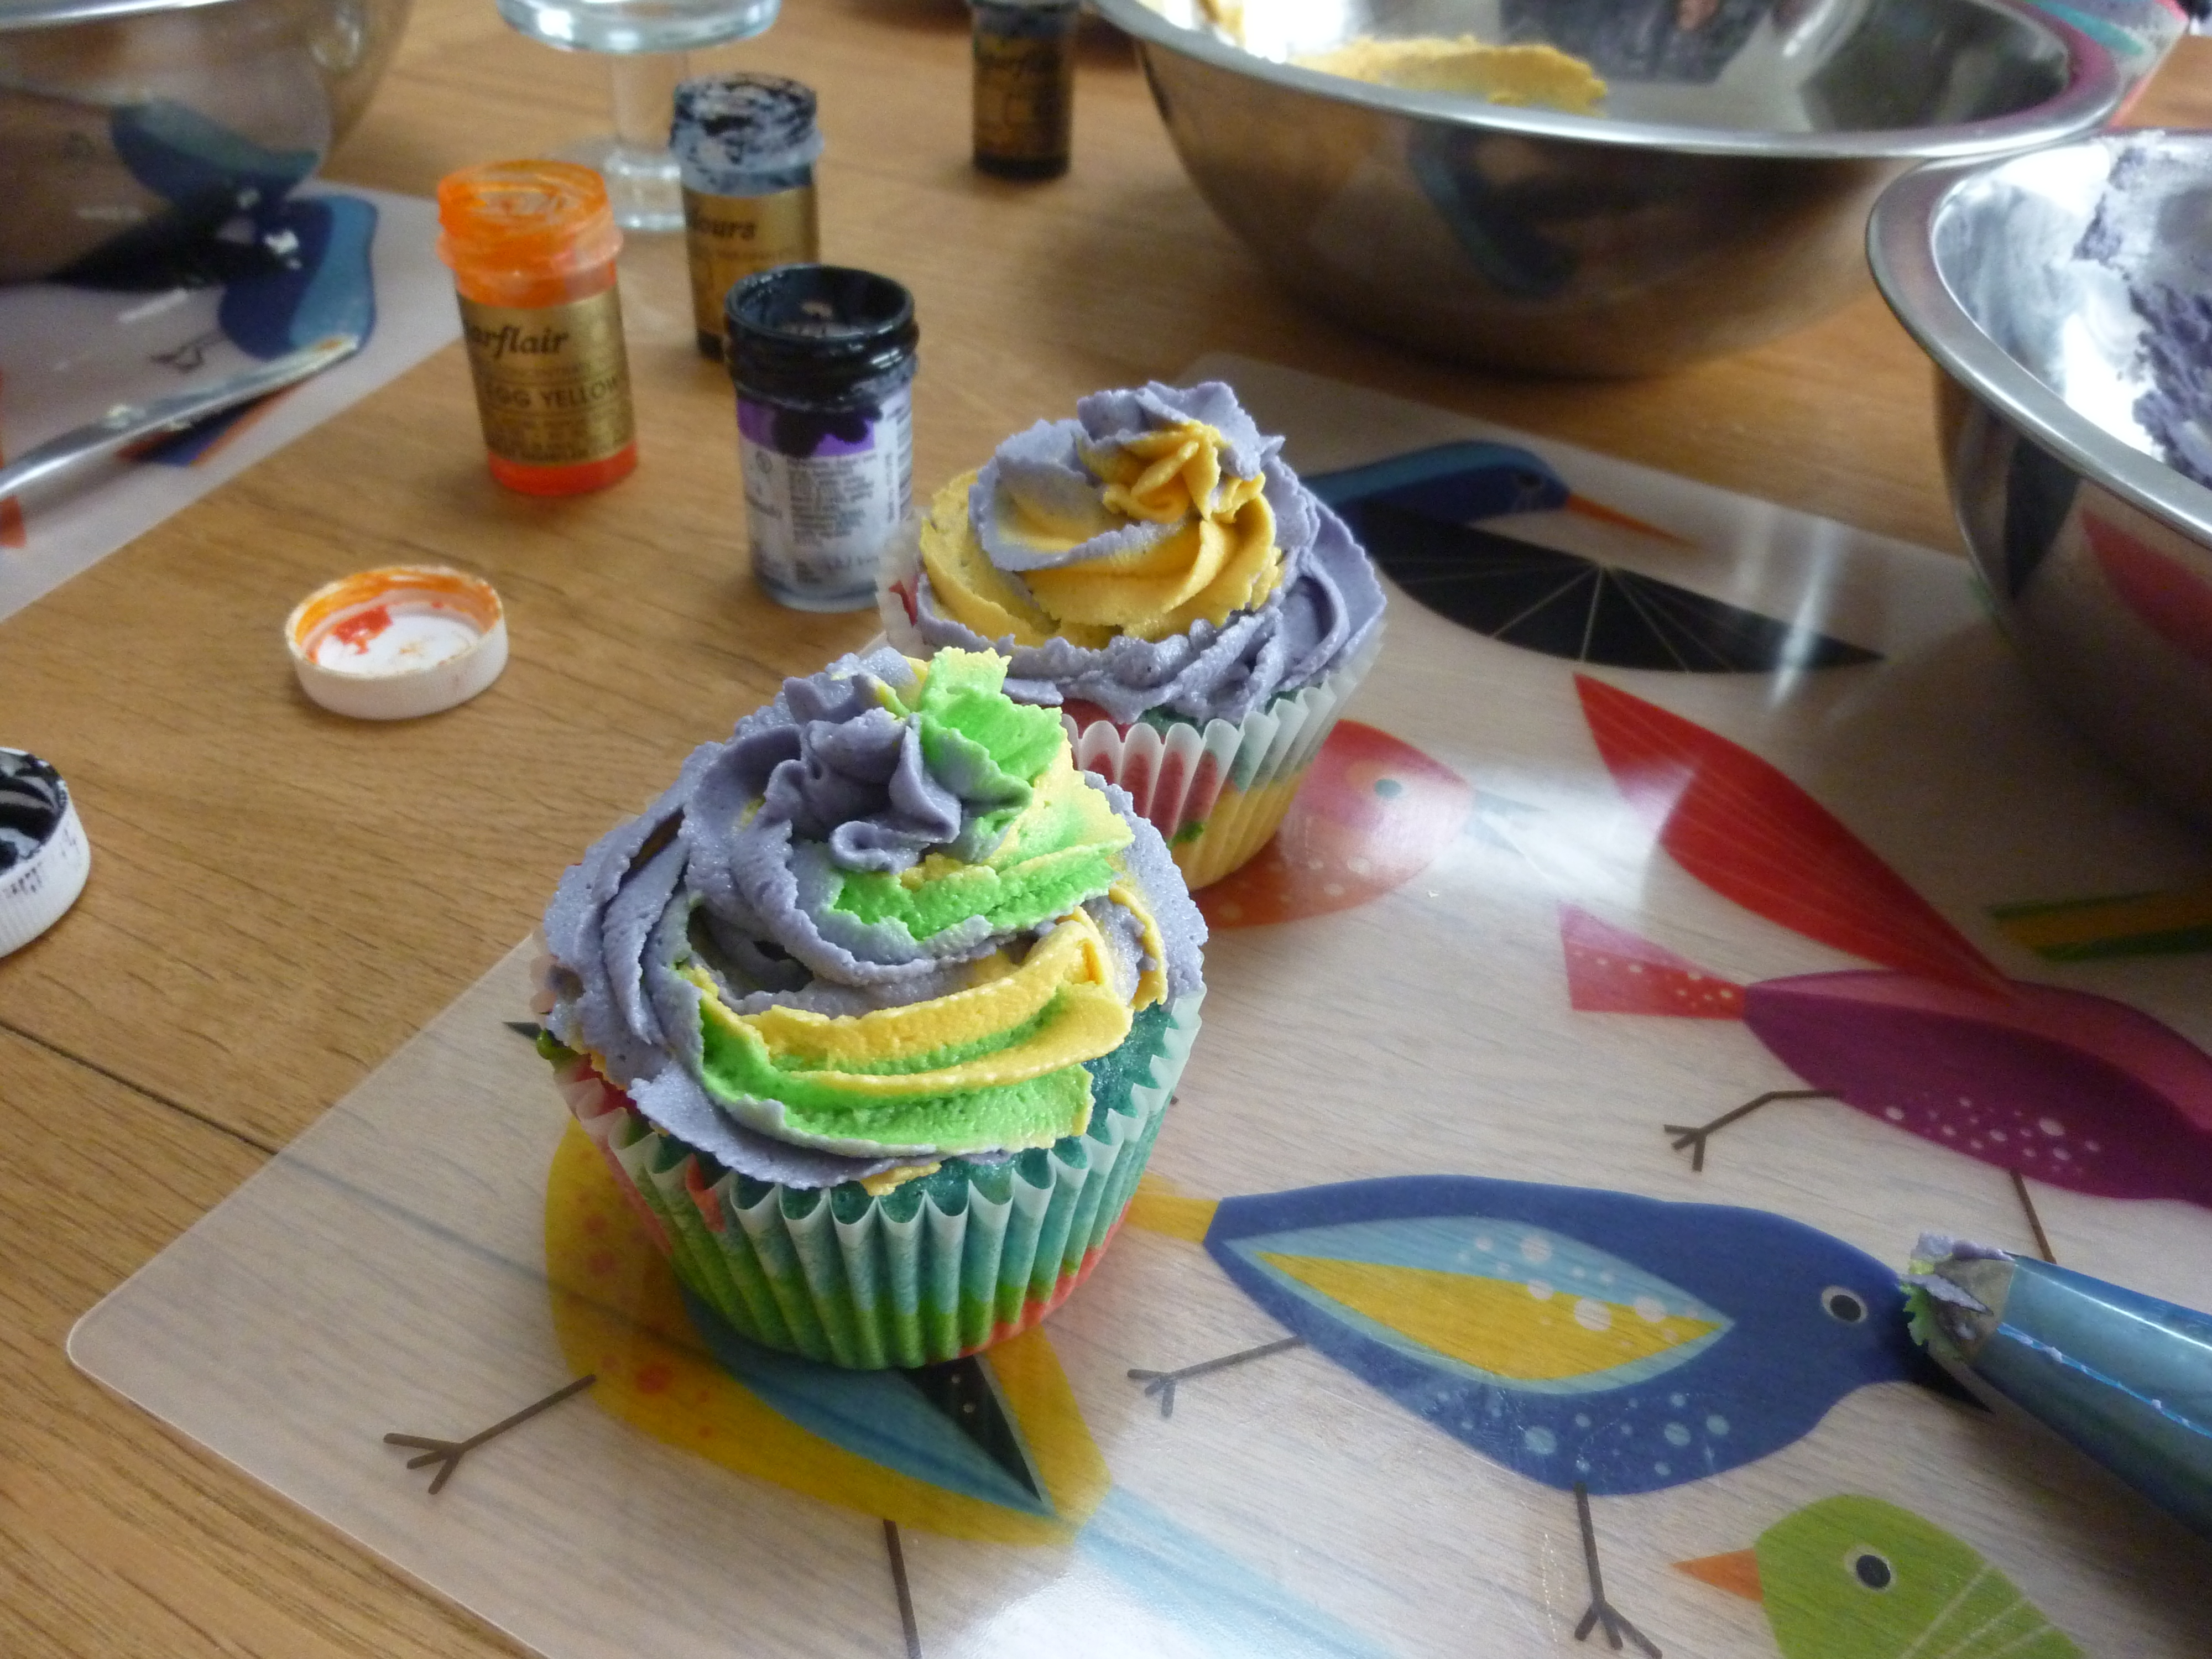 Cake Decorating Equipment Cardiff : CUPCAKE WEEK: FRIDAY- Cupcake Decorating With The Happy ...